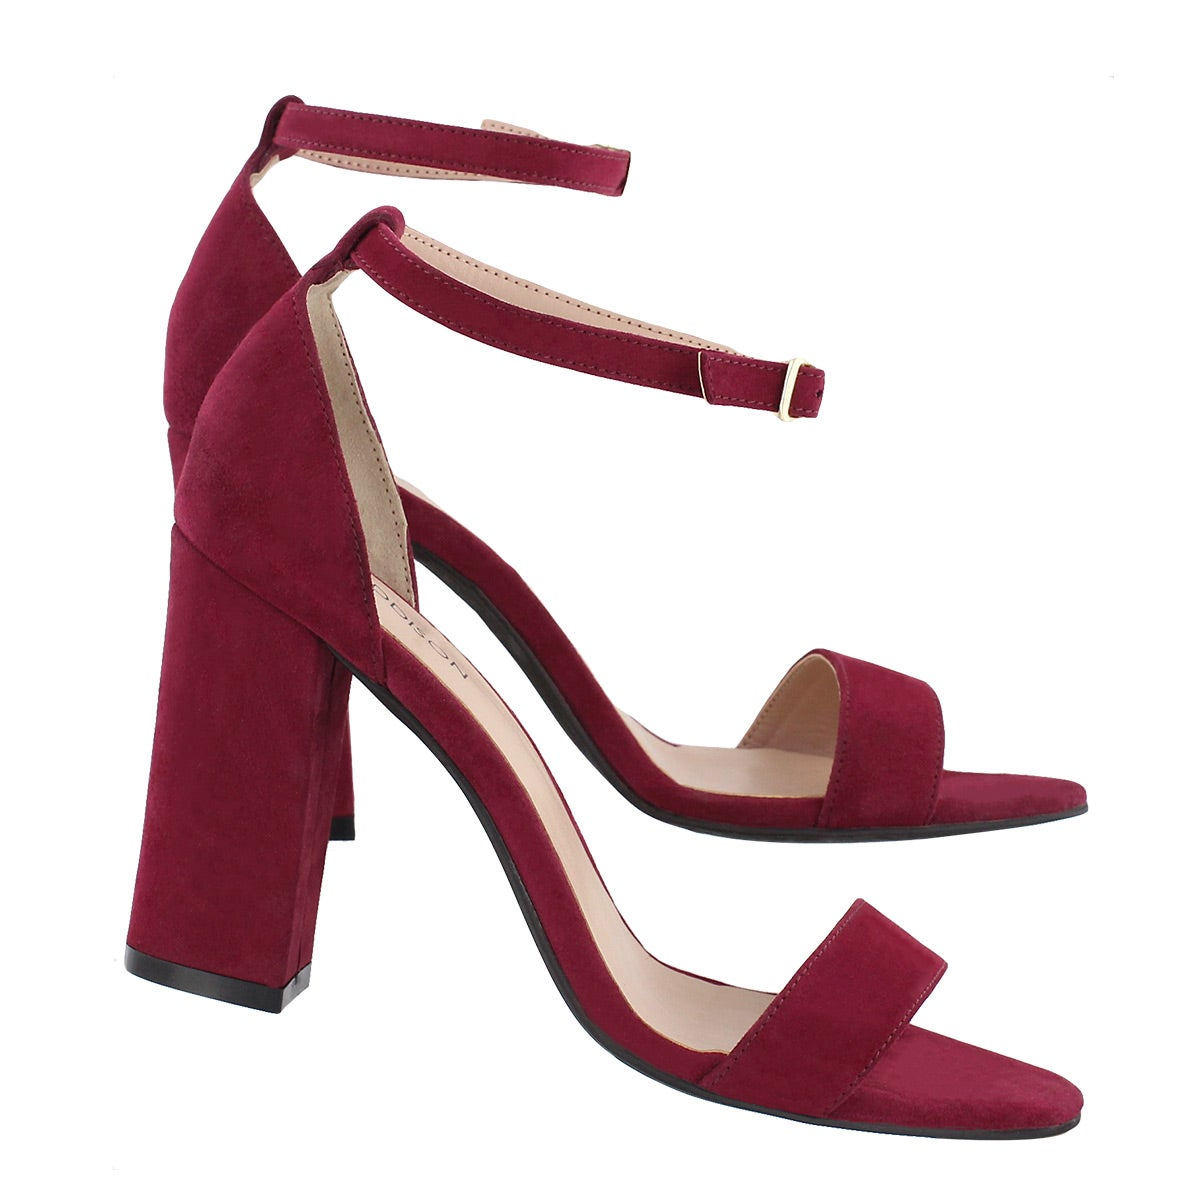 Lds Florette burgundy dress sandal